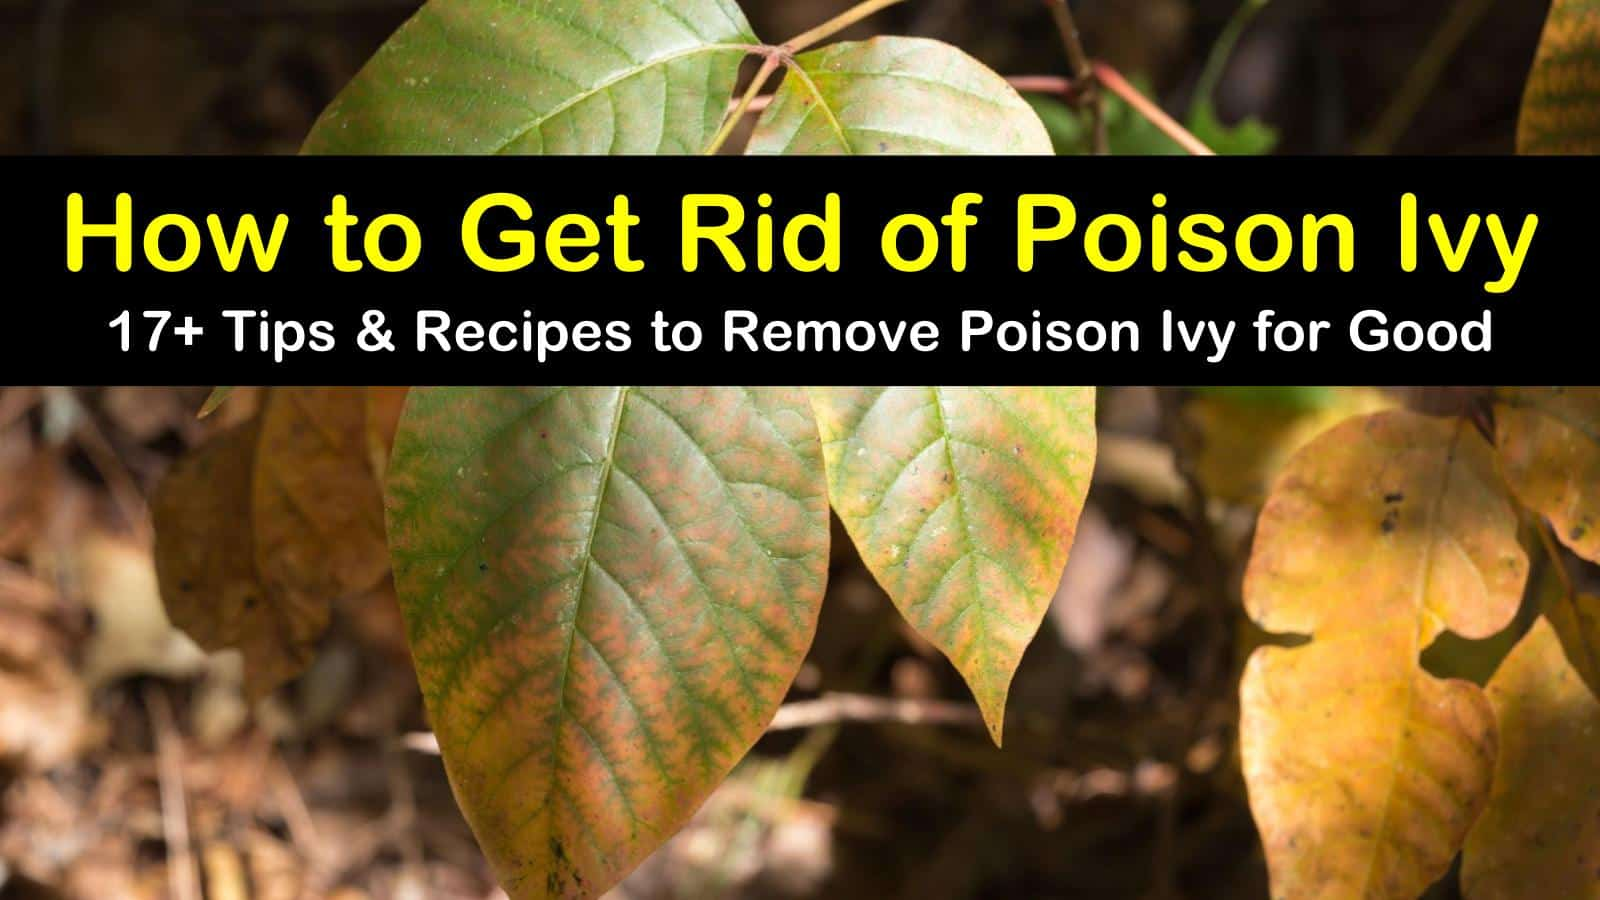 17 Smart Ways To Get Rid Of Poison Ivy For Good